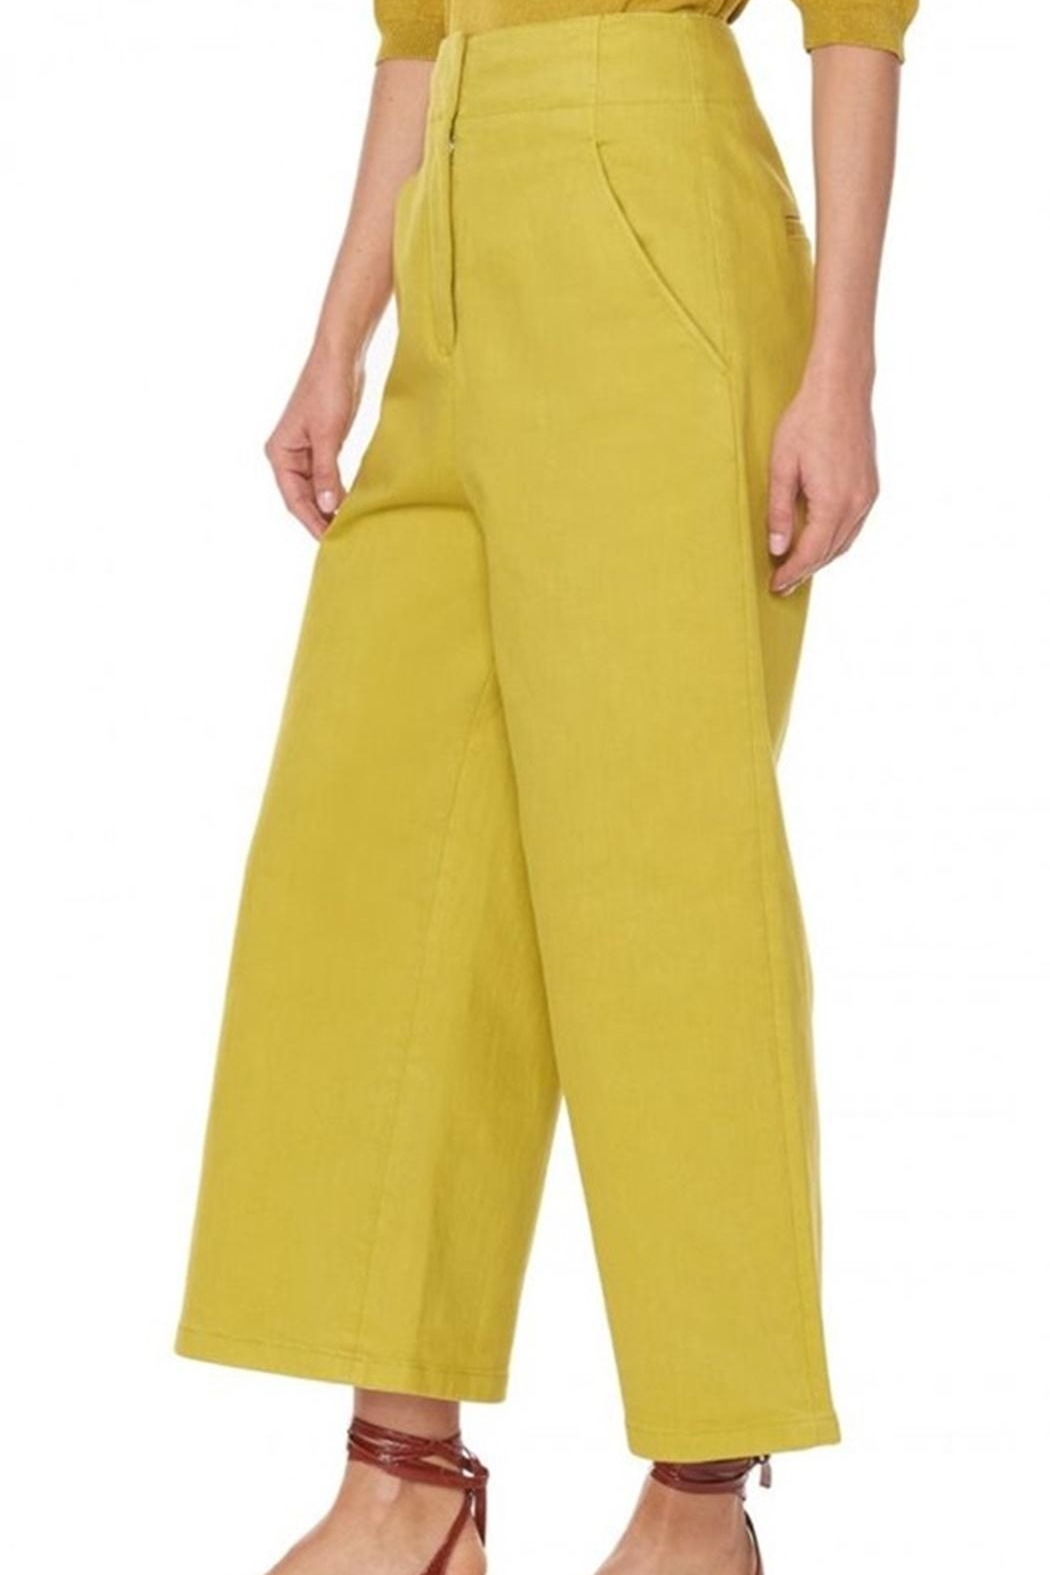 Tibi Garment Dyed Jean - Side Cropped Image